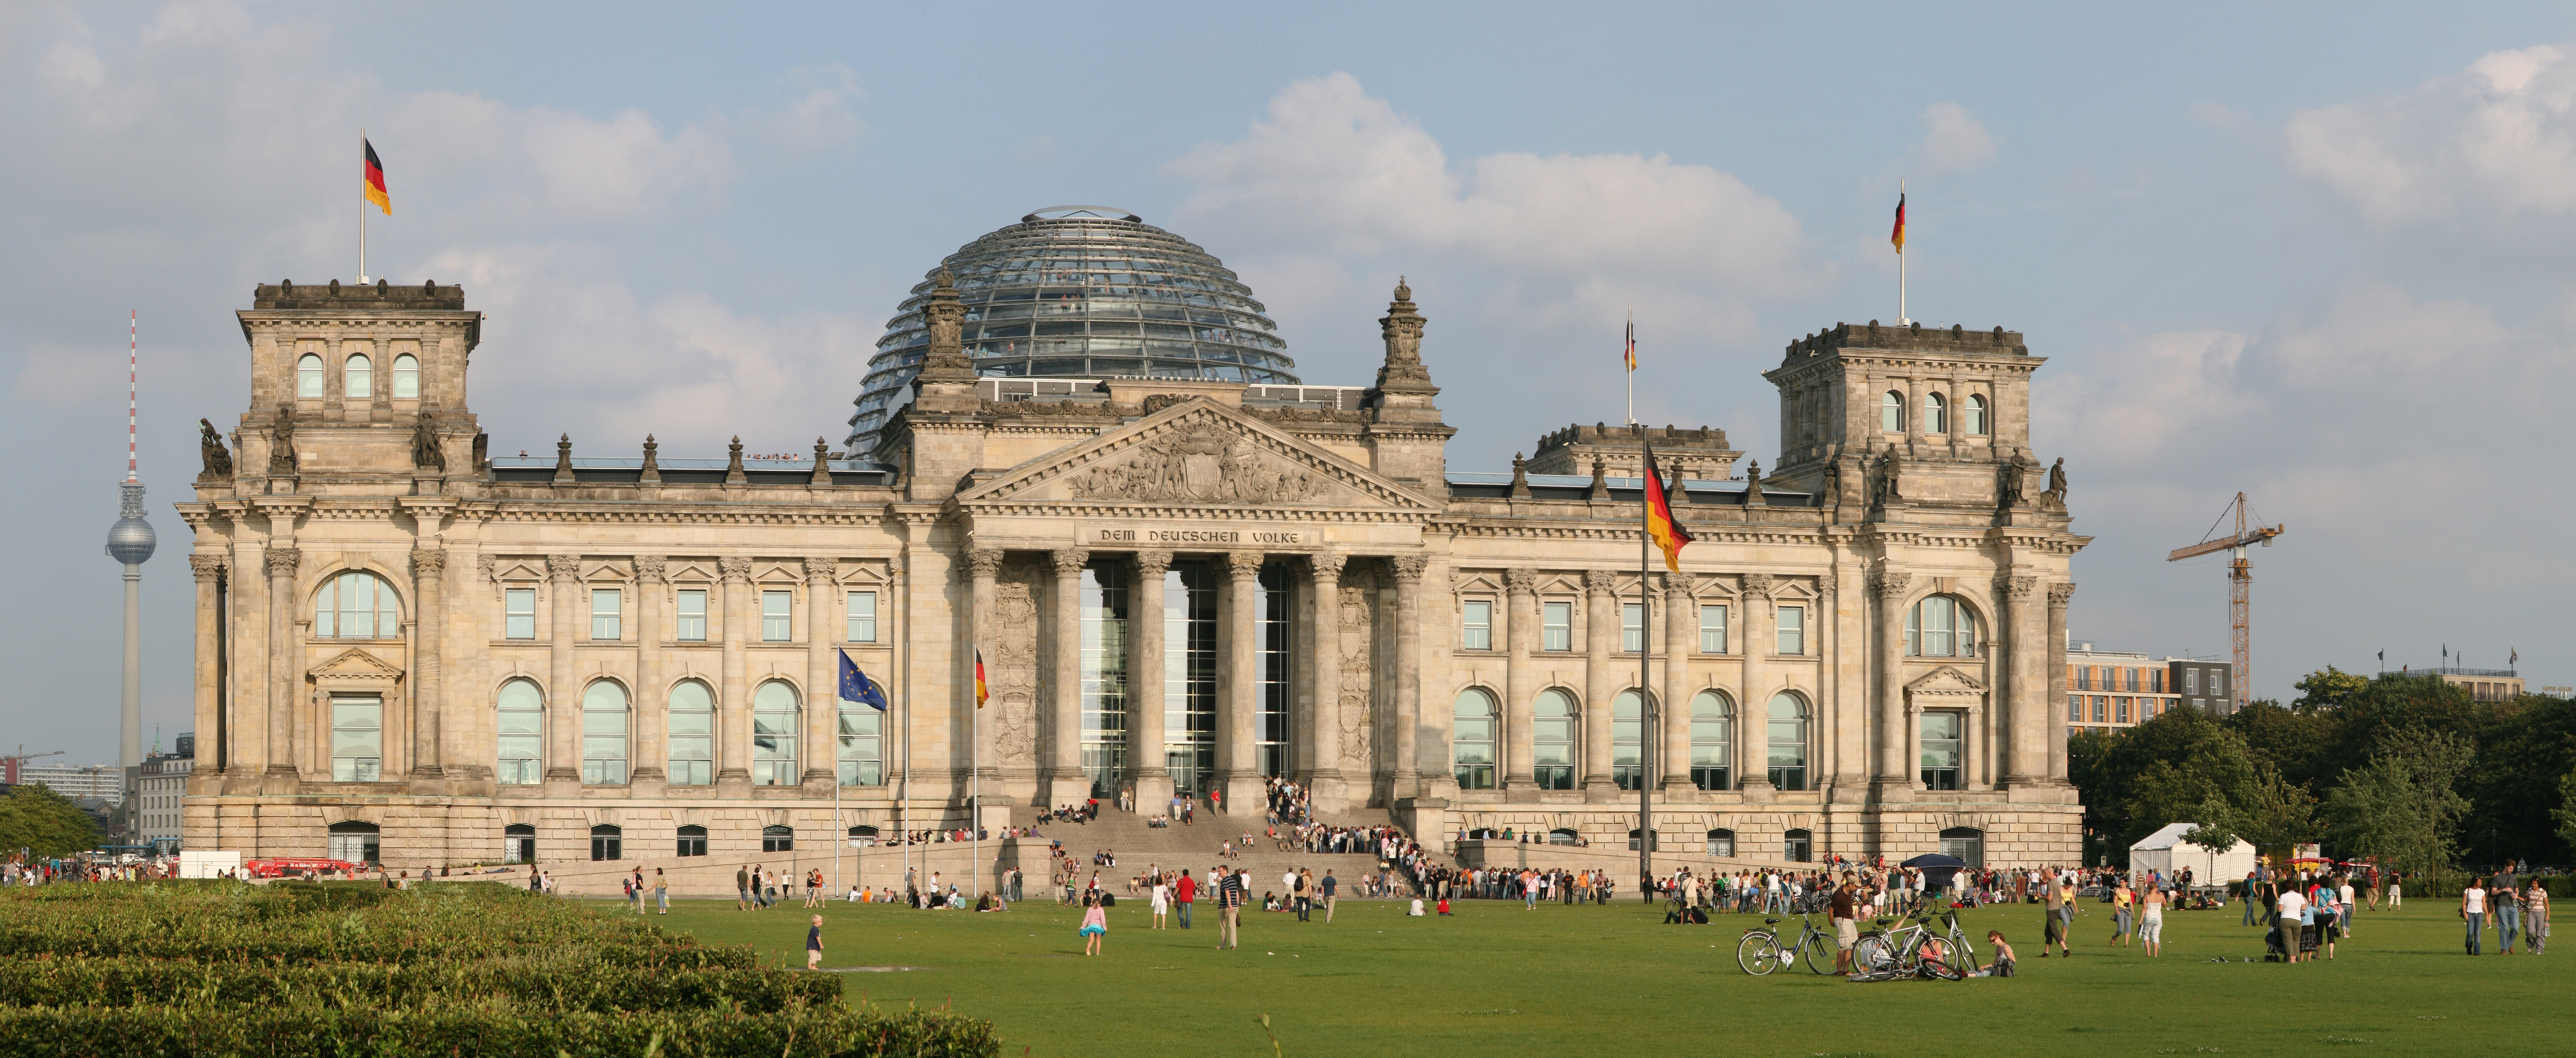 File:Reichstag pano.jpg - Wikimedia Commons